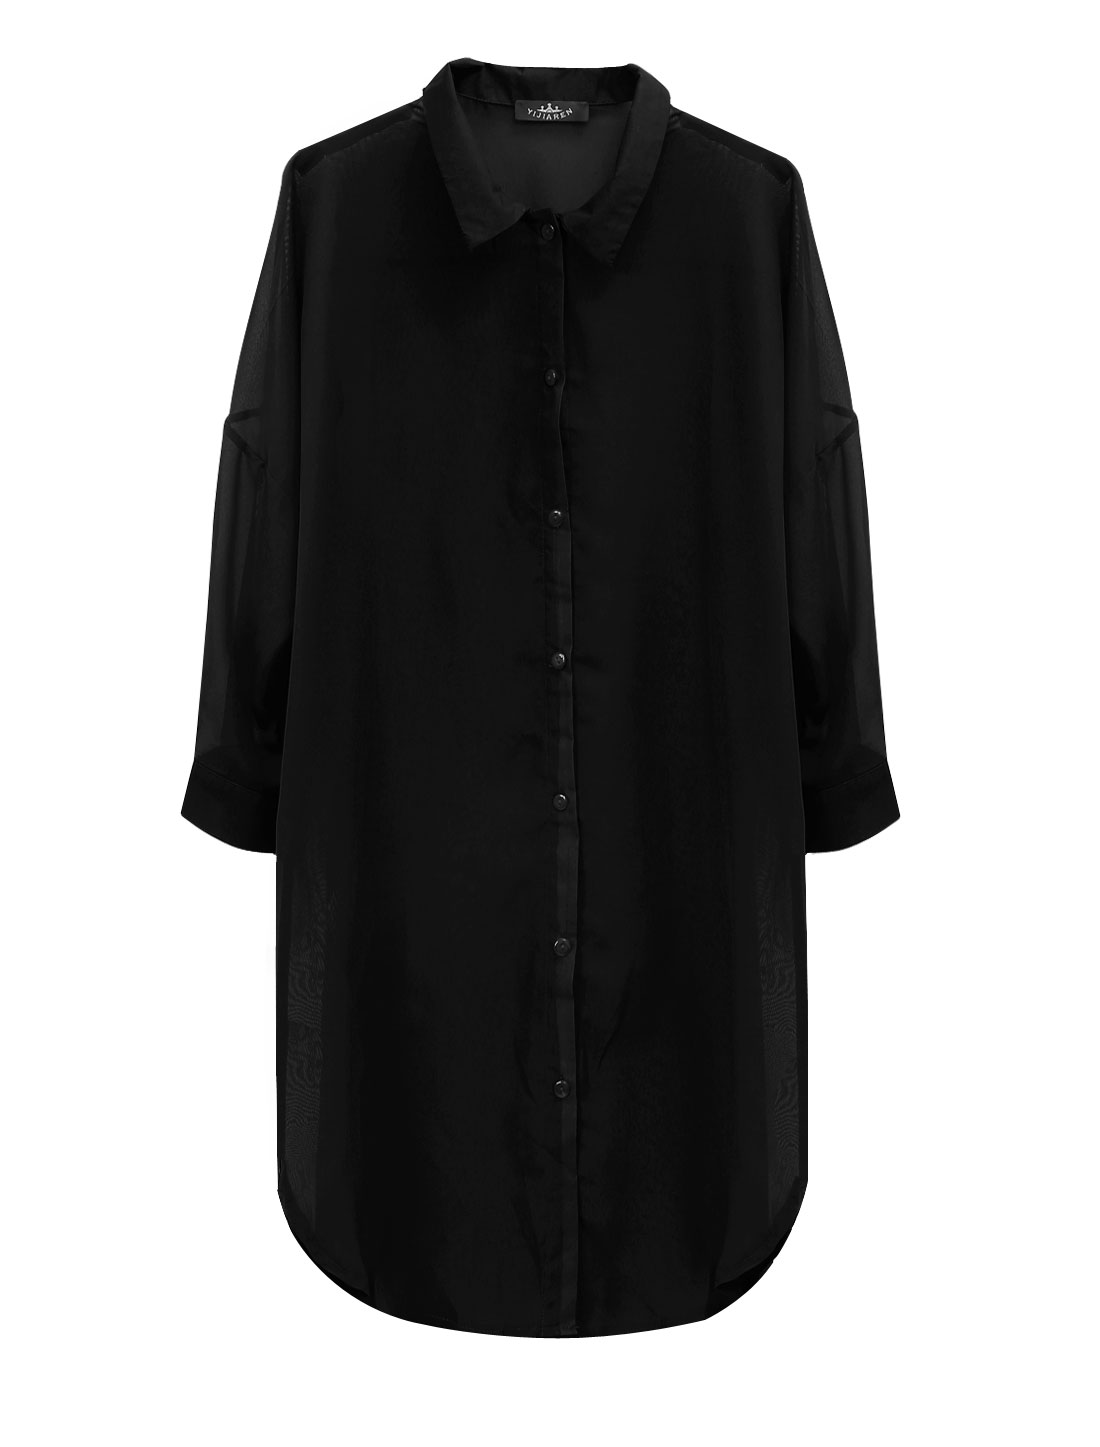 Lady Single Breasted 3/4 Batwing Sleeve Long Chiffon Cardigan Black S